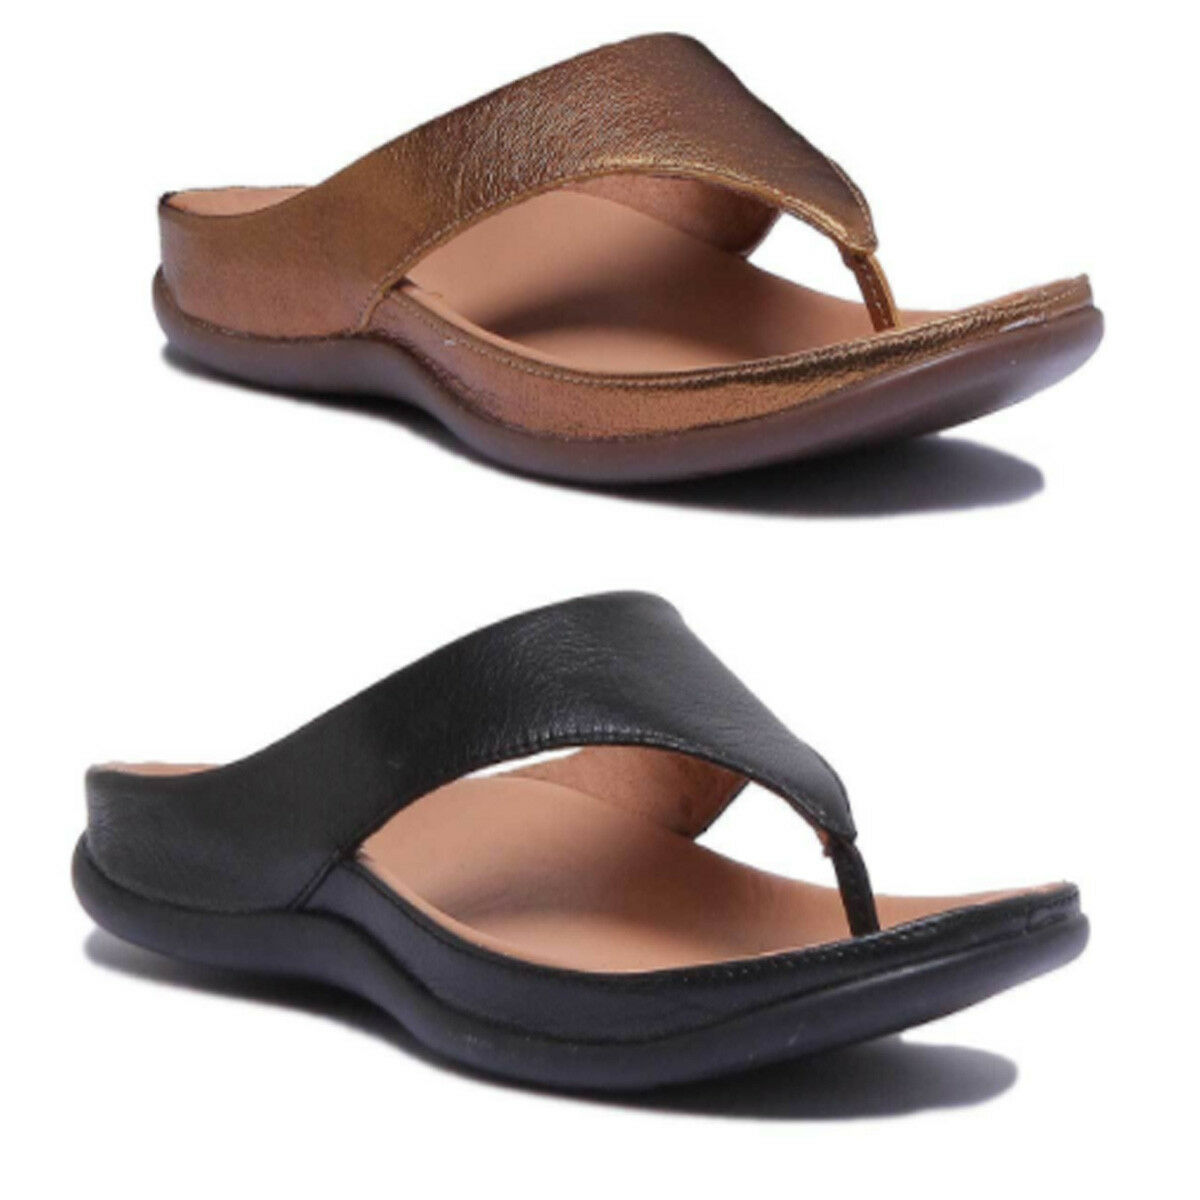 Strive Maui Women Leather Sandals Matt Bronze Toe Post Sandals Leather Size UK 3 - 8 0aa3b0